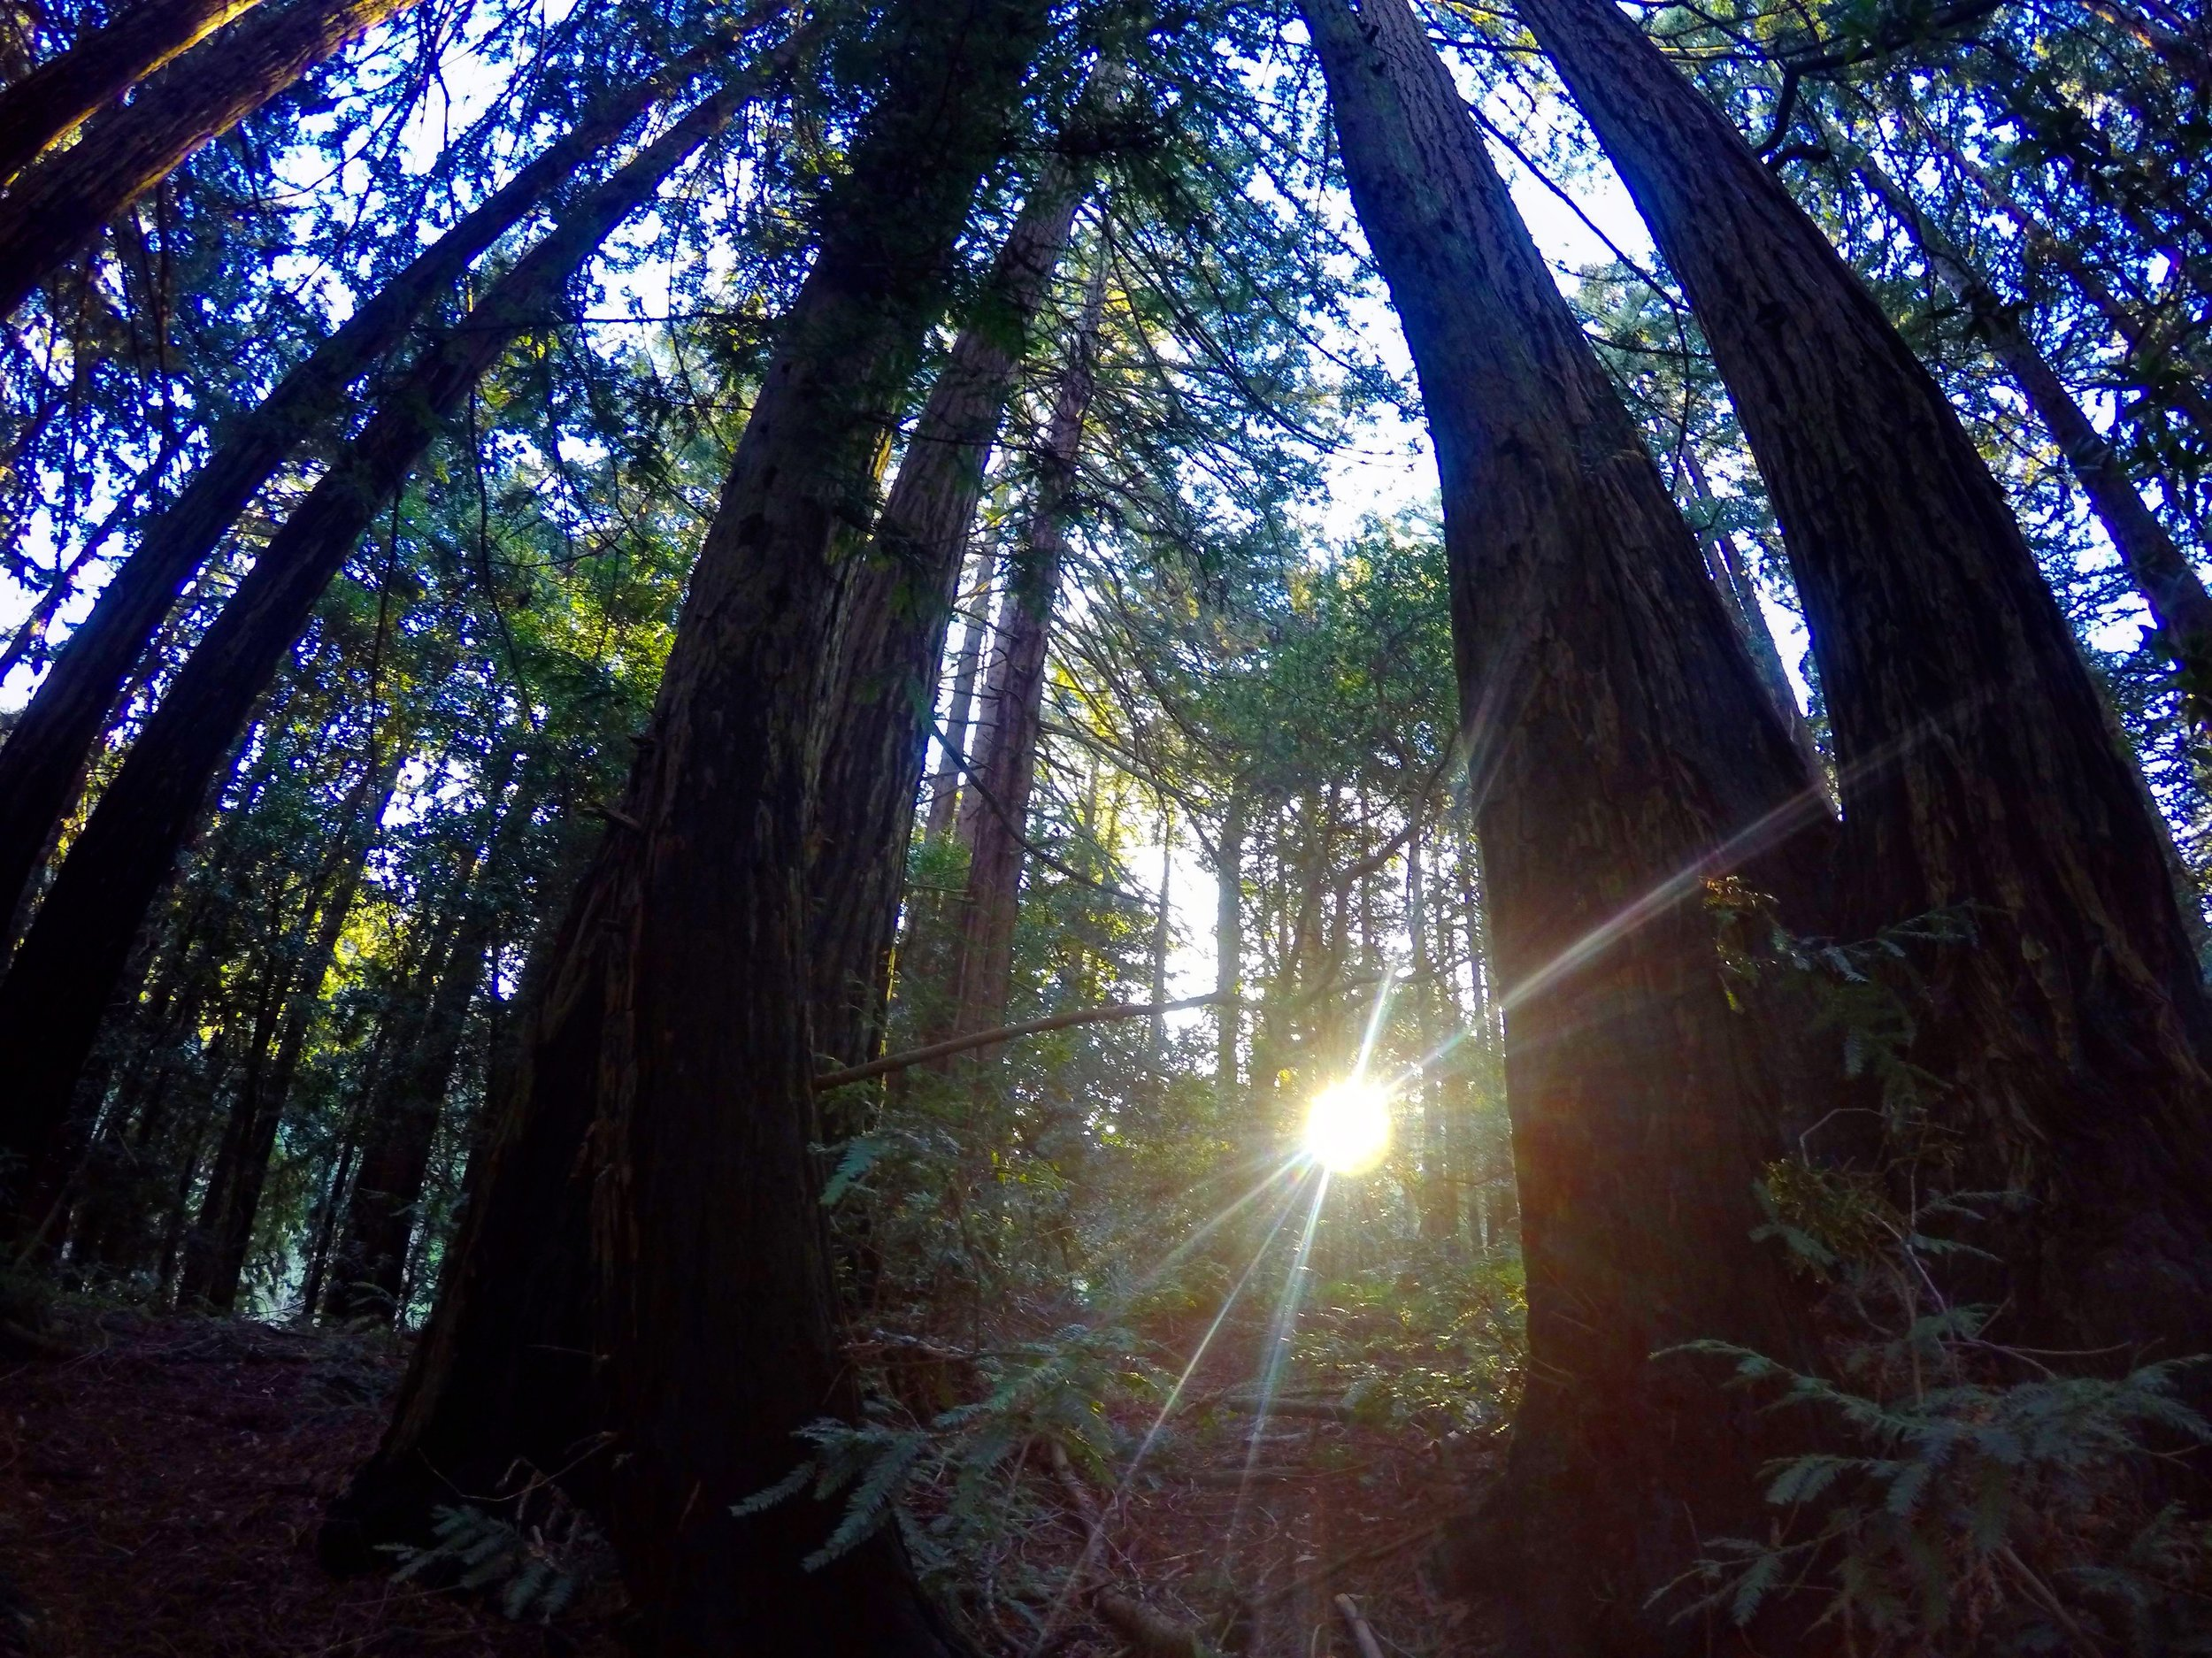 Hiking sessions and nature immersion with Jennifer at Redwood Regional Park.